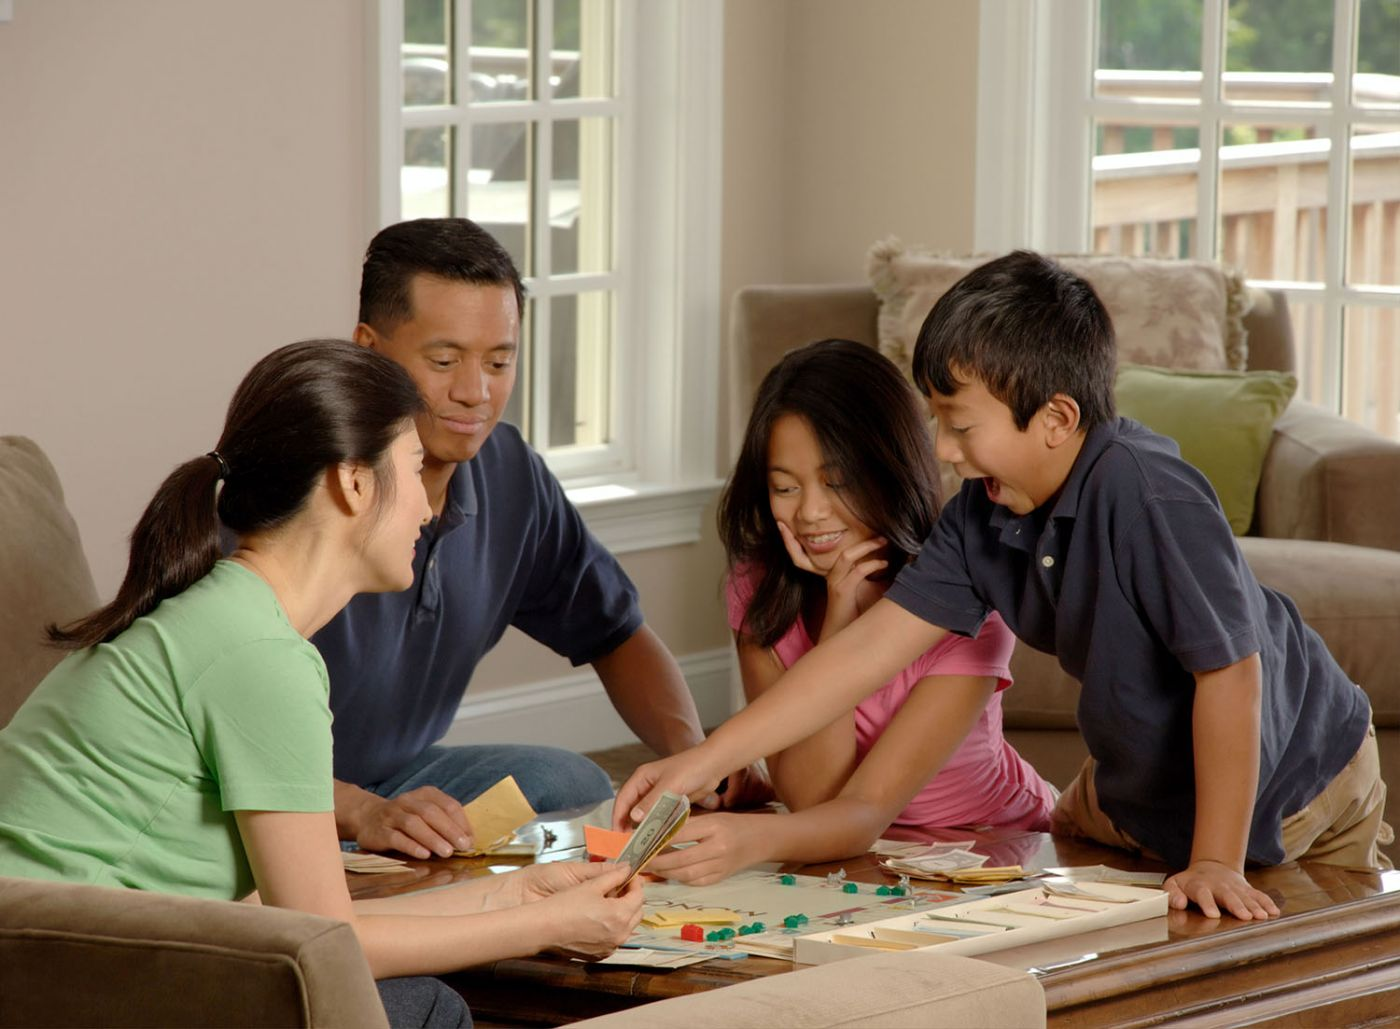 Family playing boardgames together